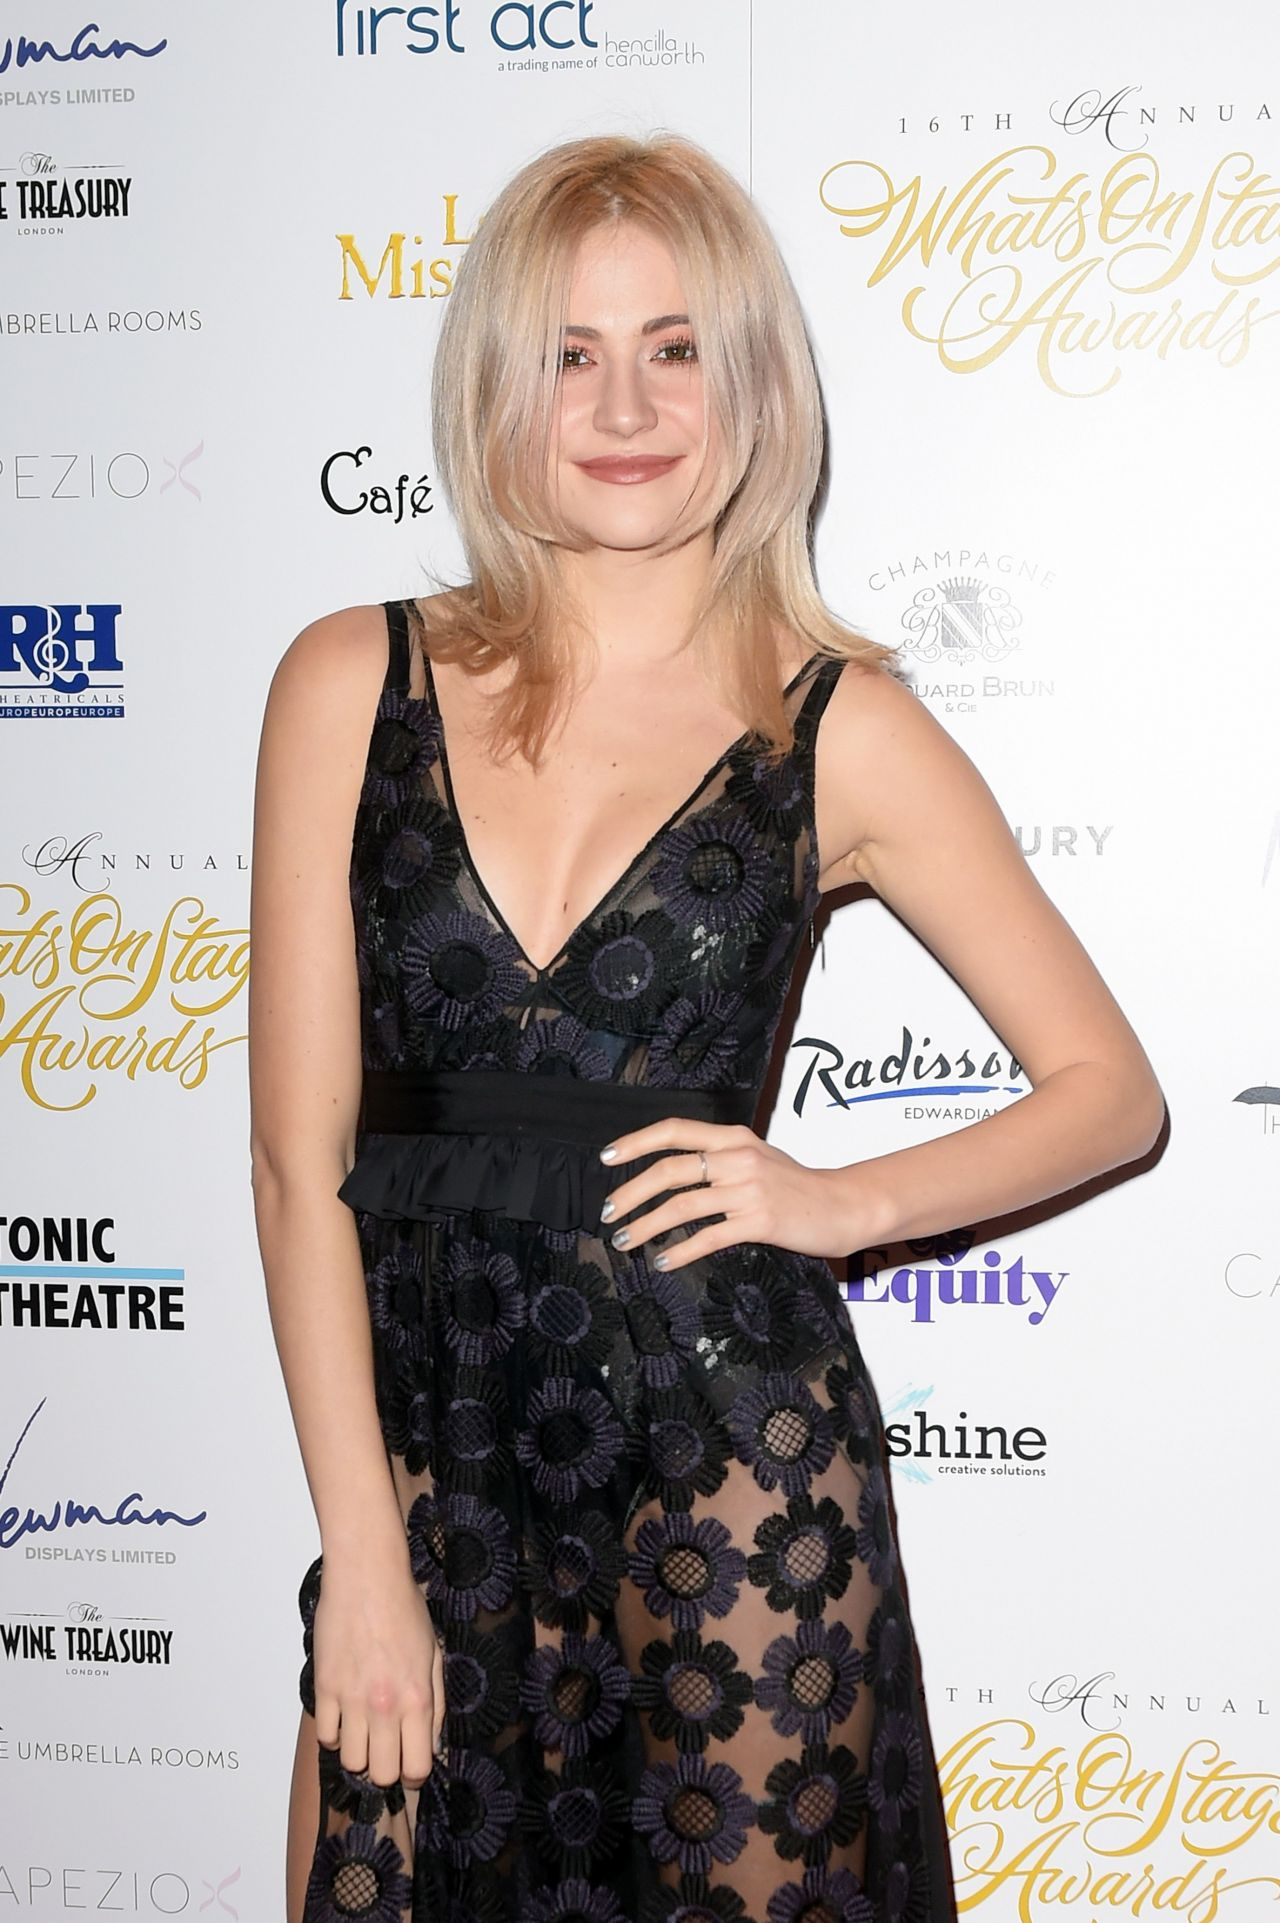 pixie-lott-2016-whatsonstage-awards-in-london-11